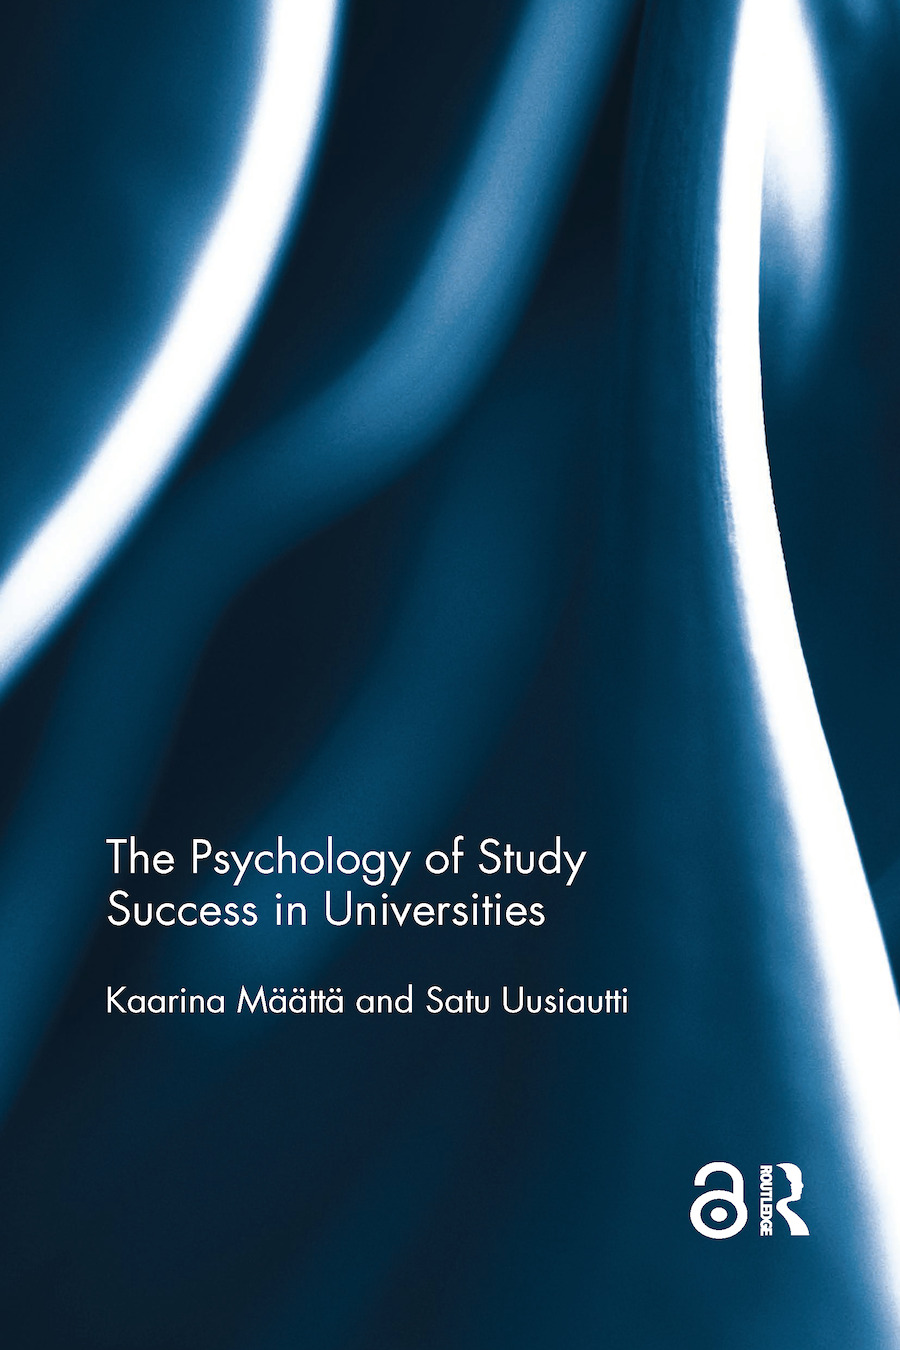 The Psychology of Study Success in Universities book cover